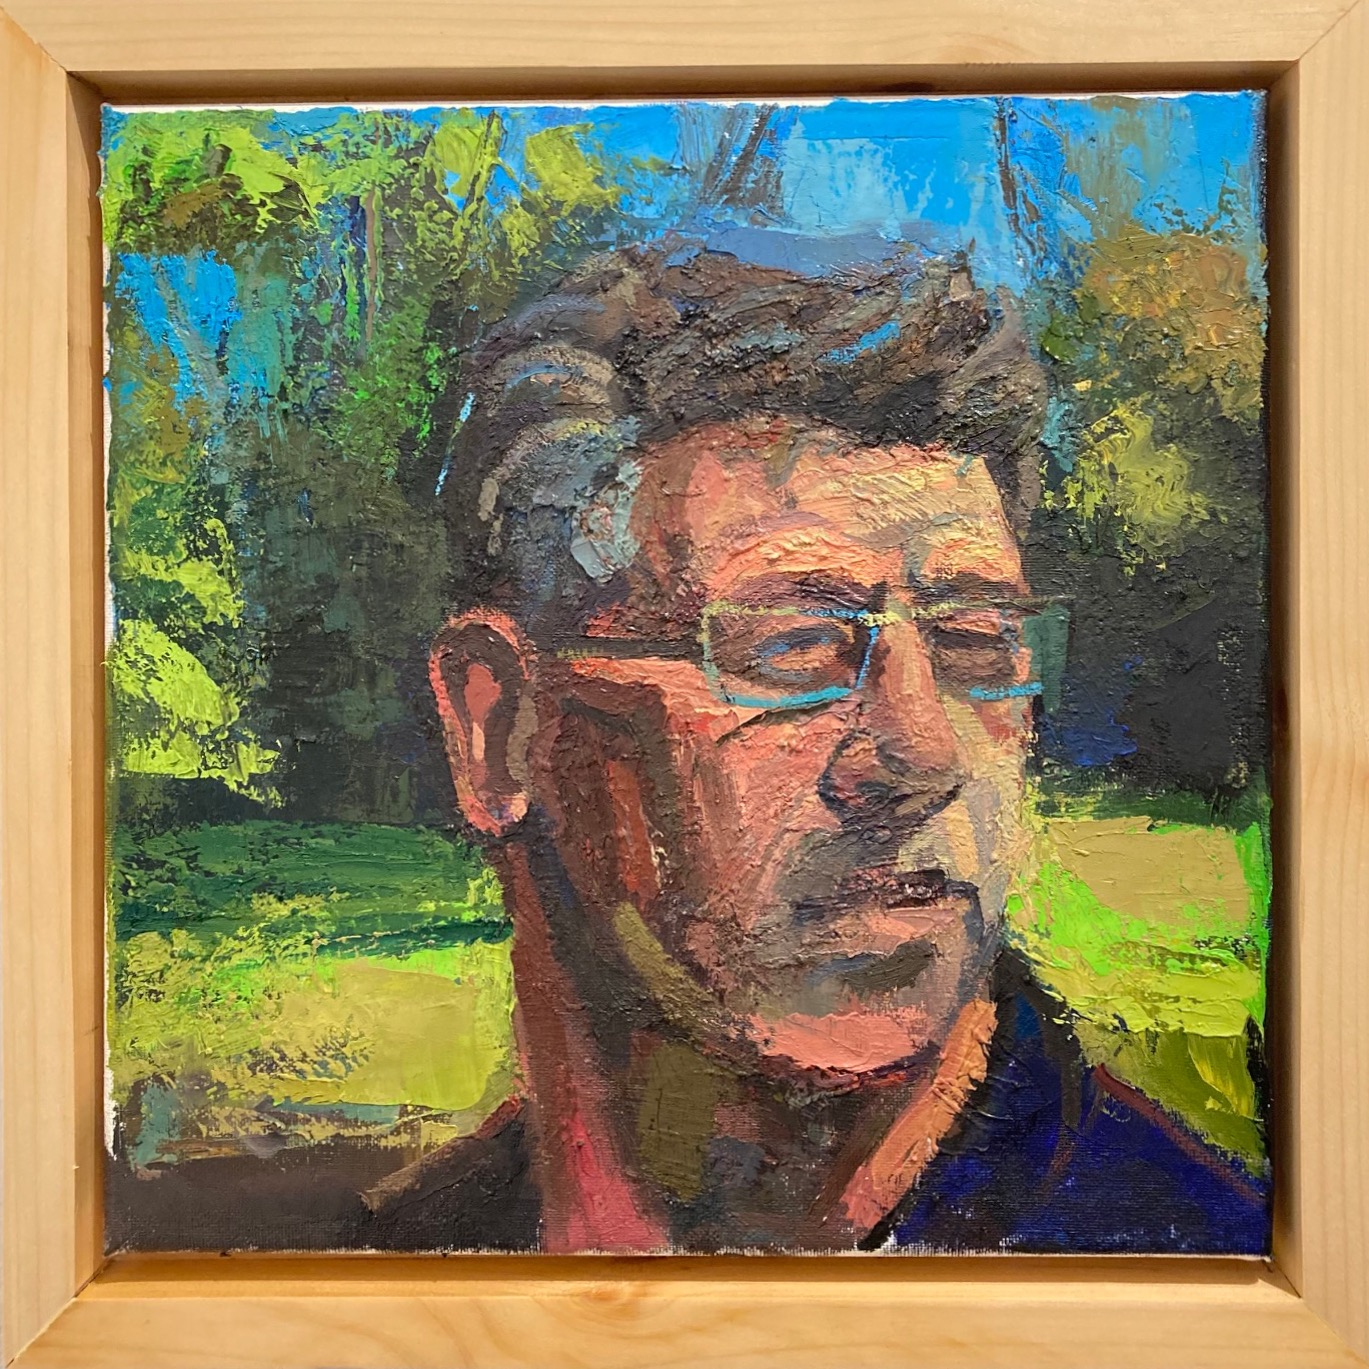 Brad Archambault  -  A View from Behind Me  -  oil on canvas  -  $1,000.00